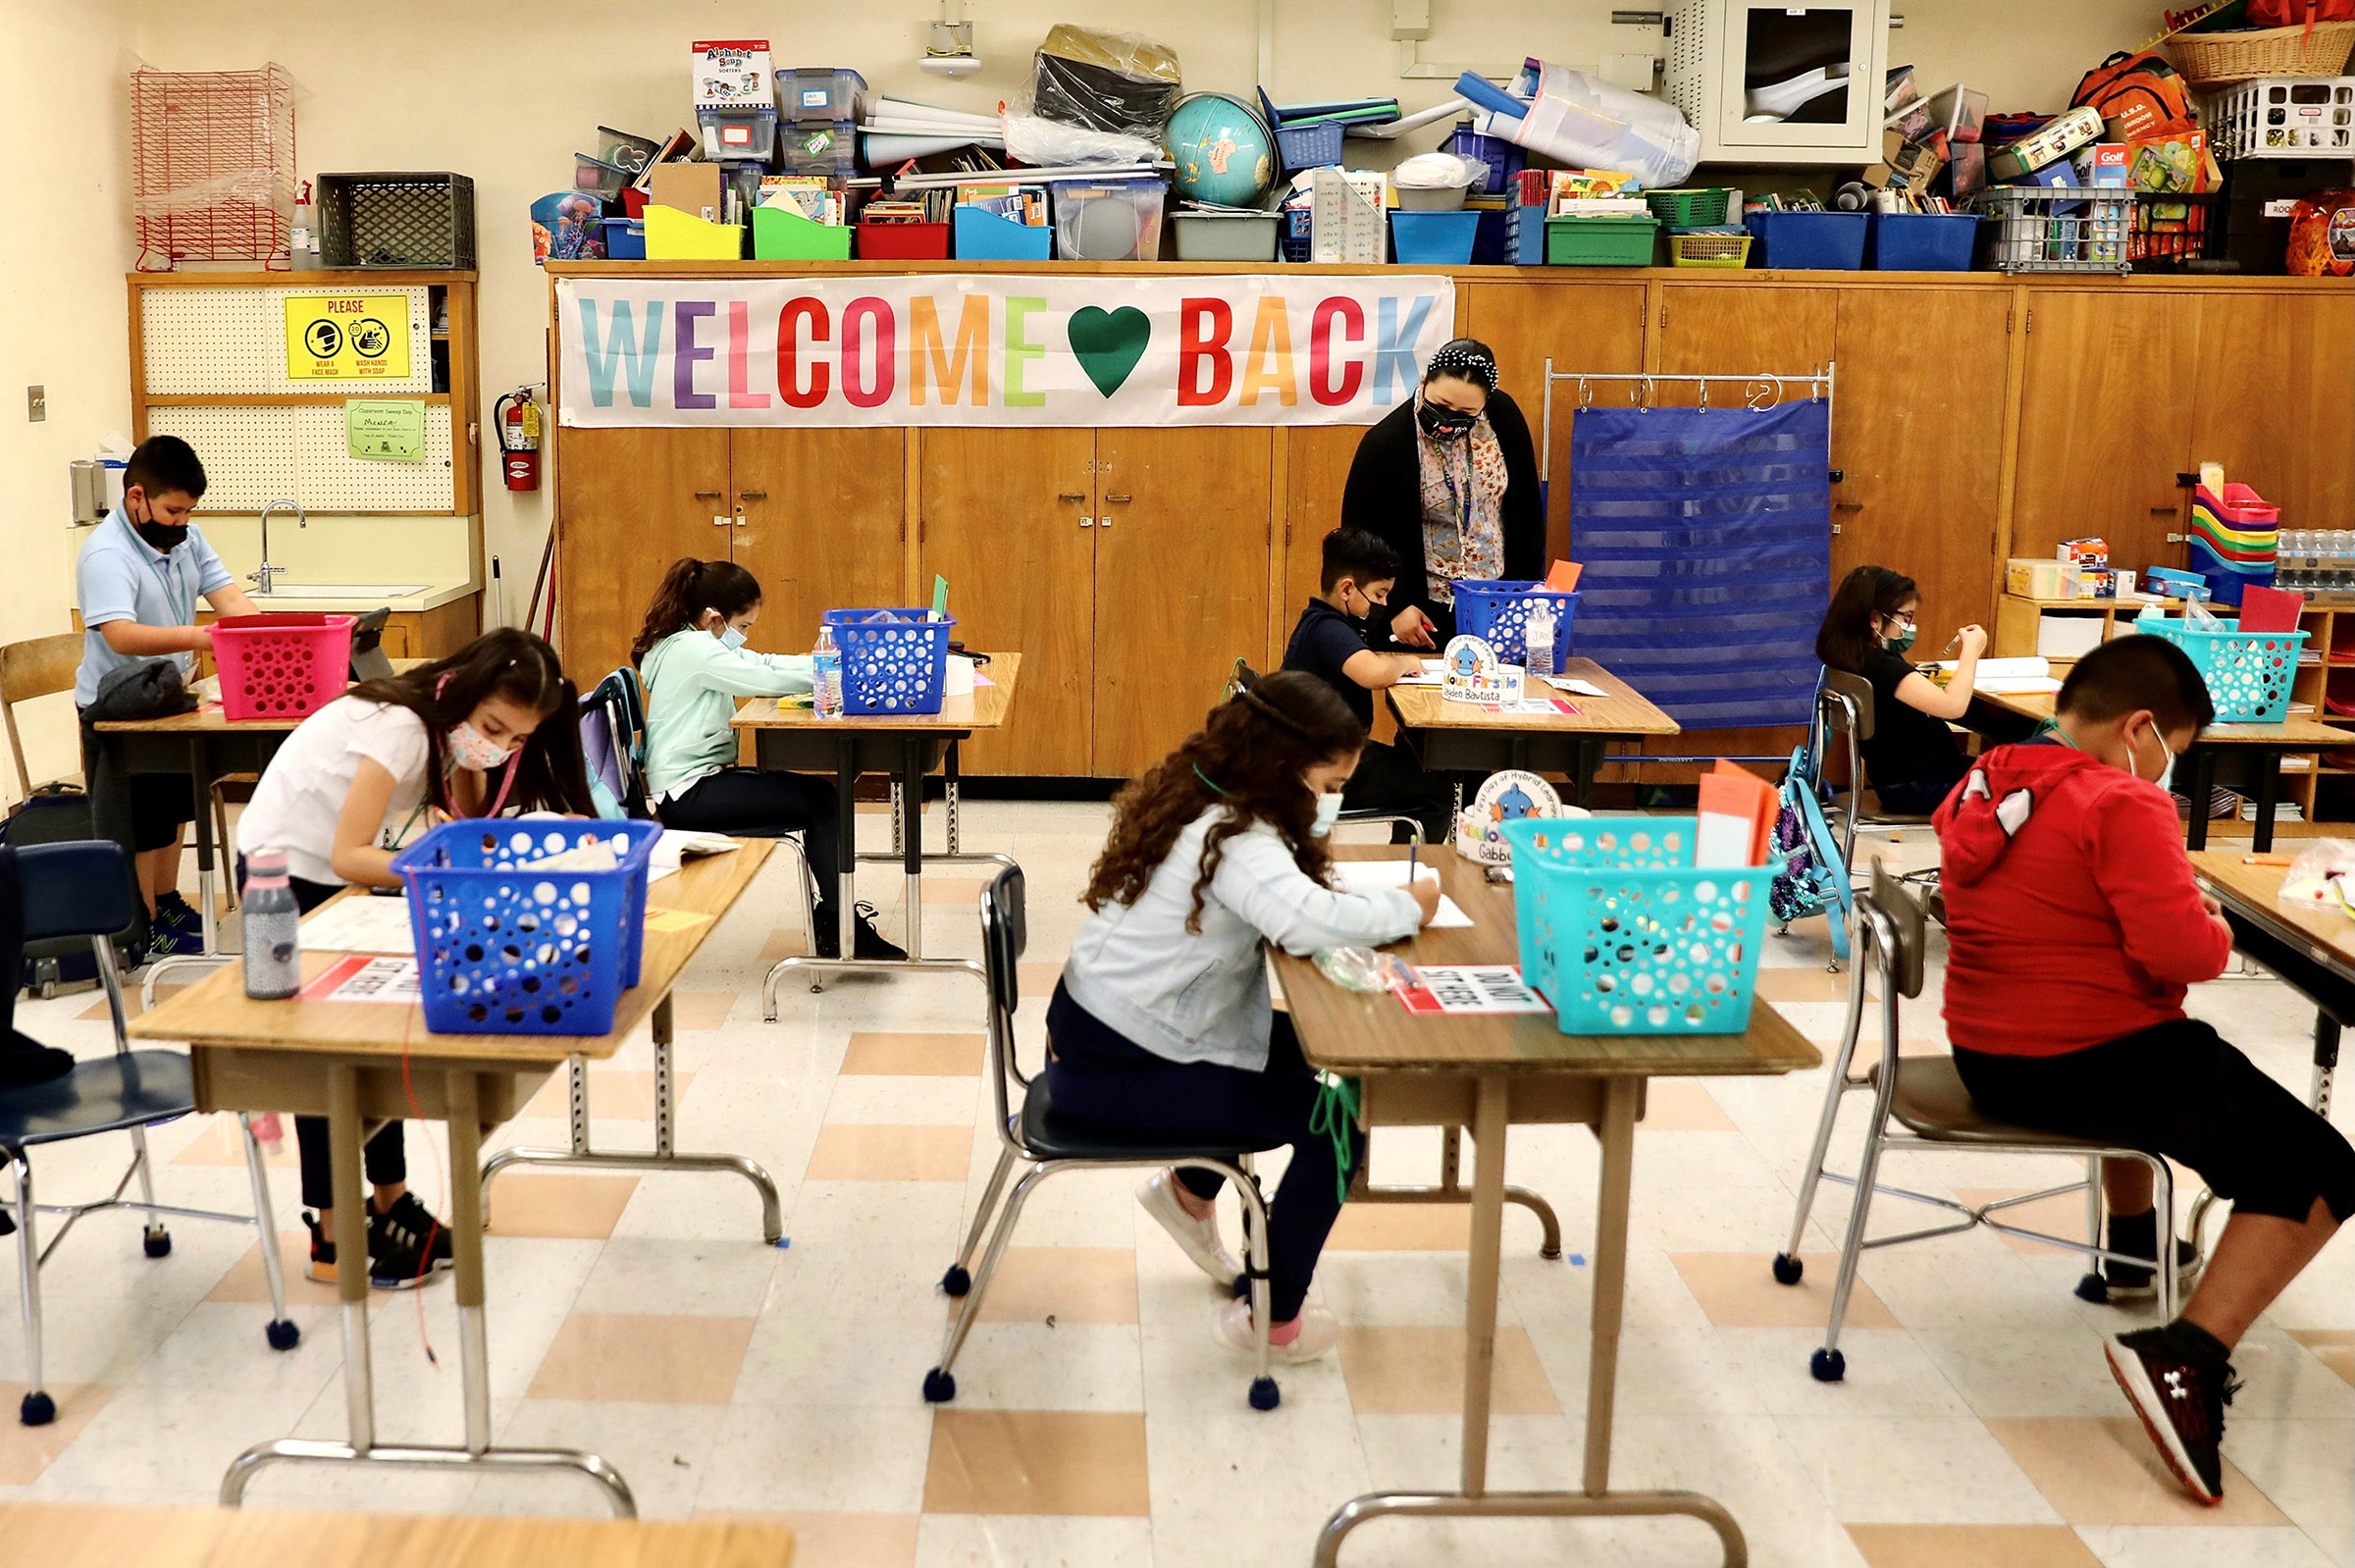 Students attend in-person class at a school in Los Angeles, California, on April 13.